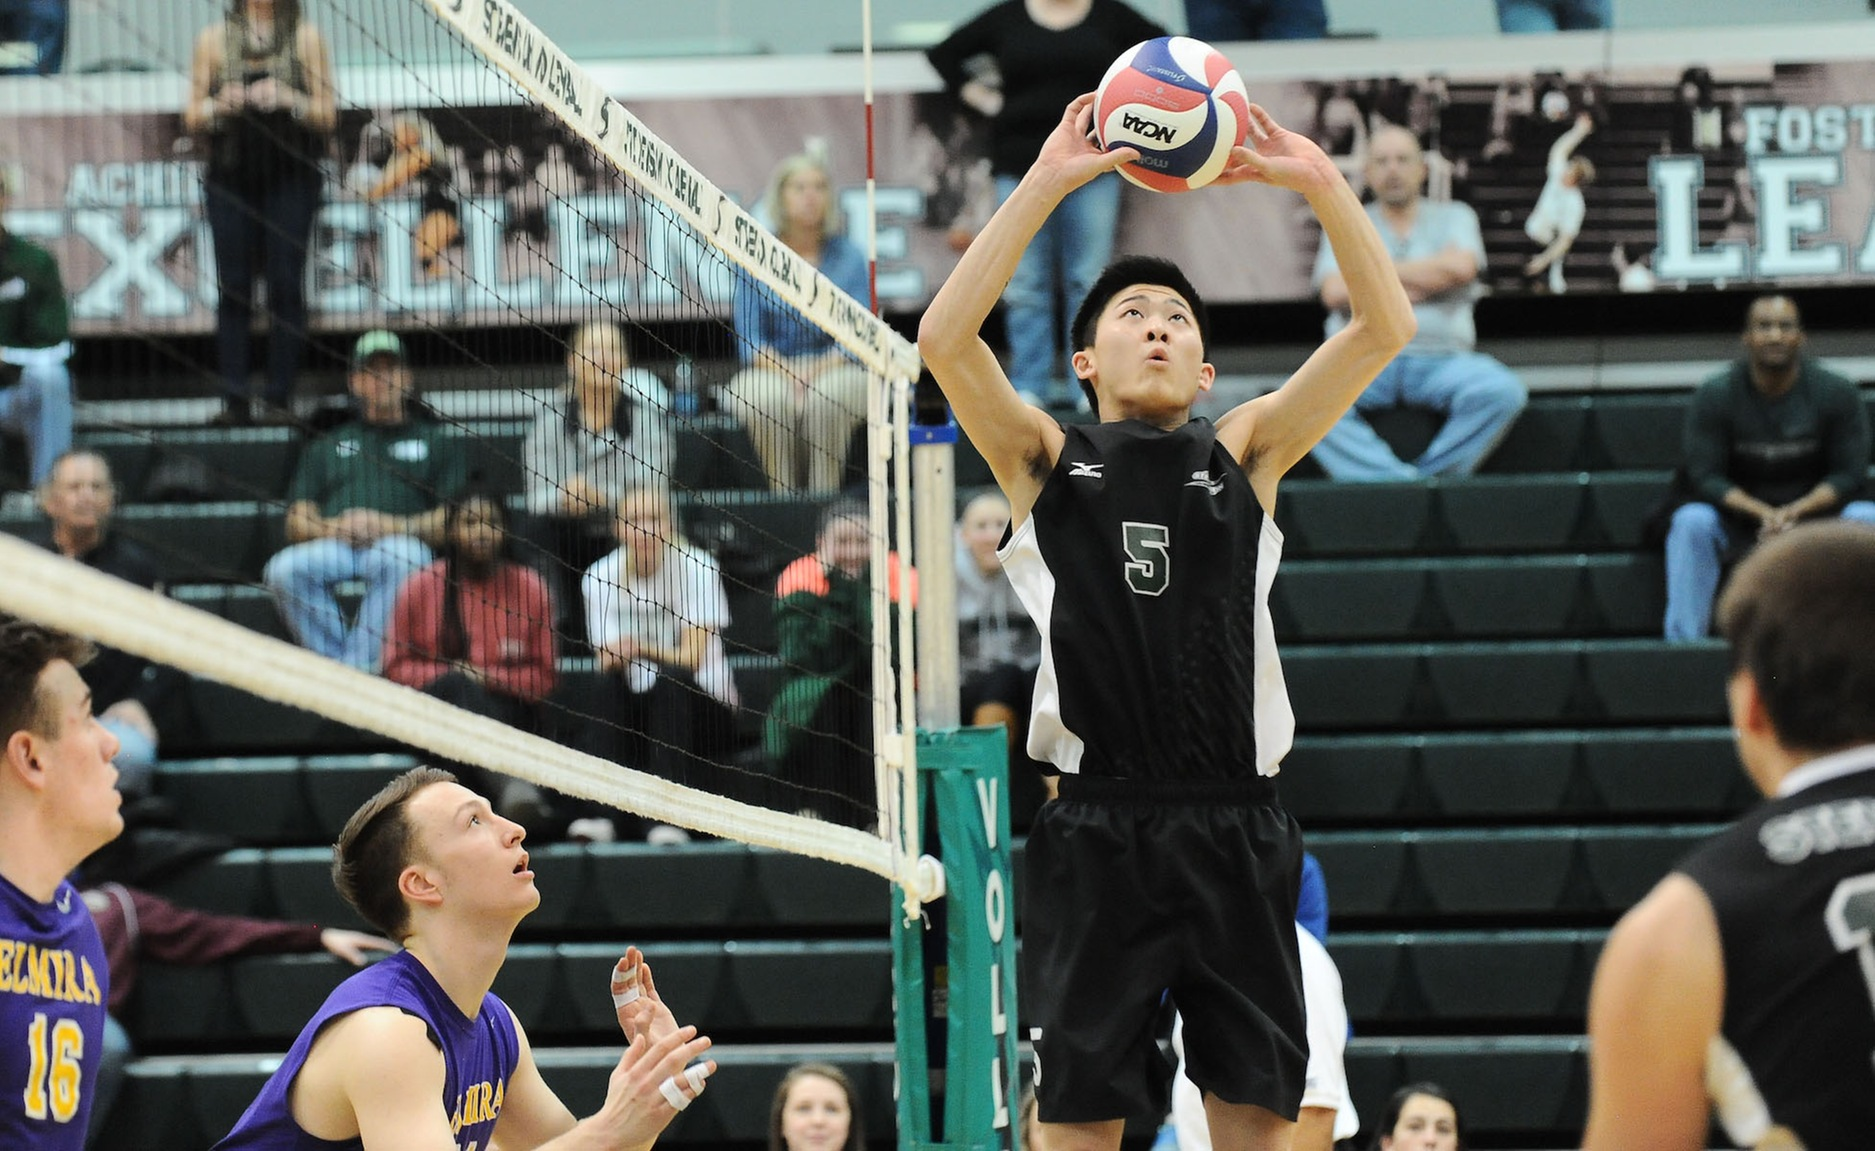 Strong Offense Leads Mustangs Past Thiel in Straight Sets